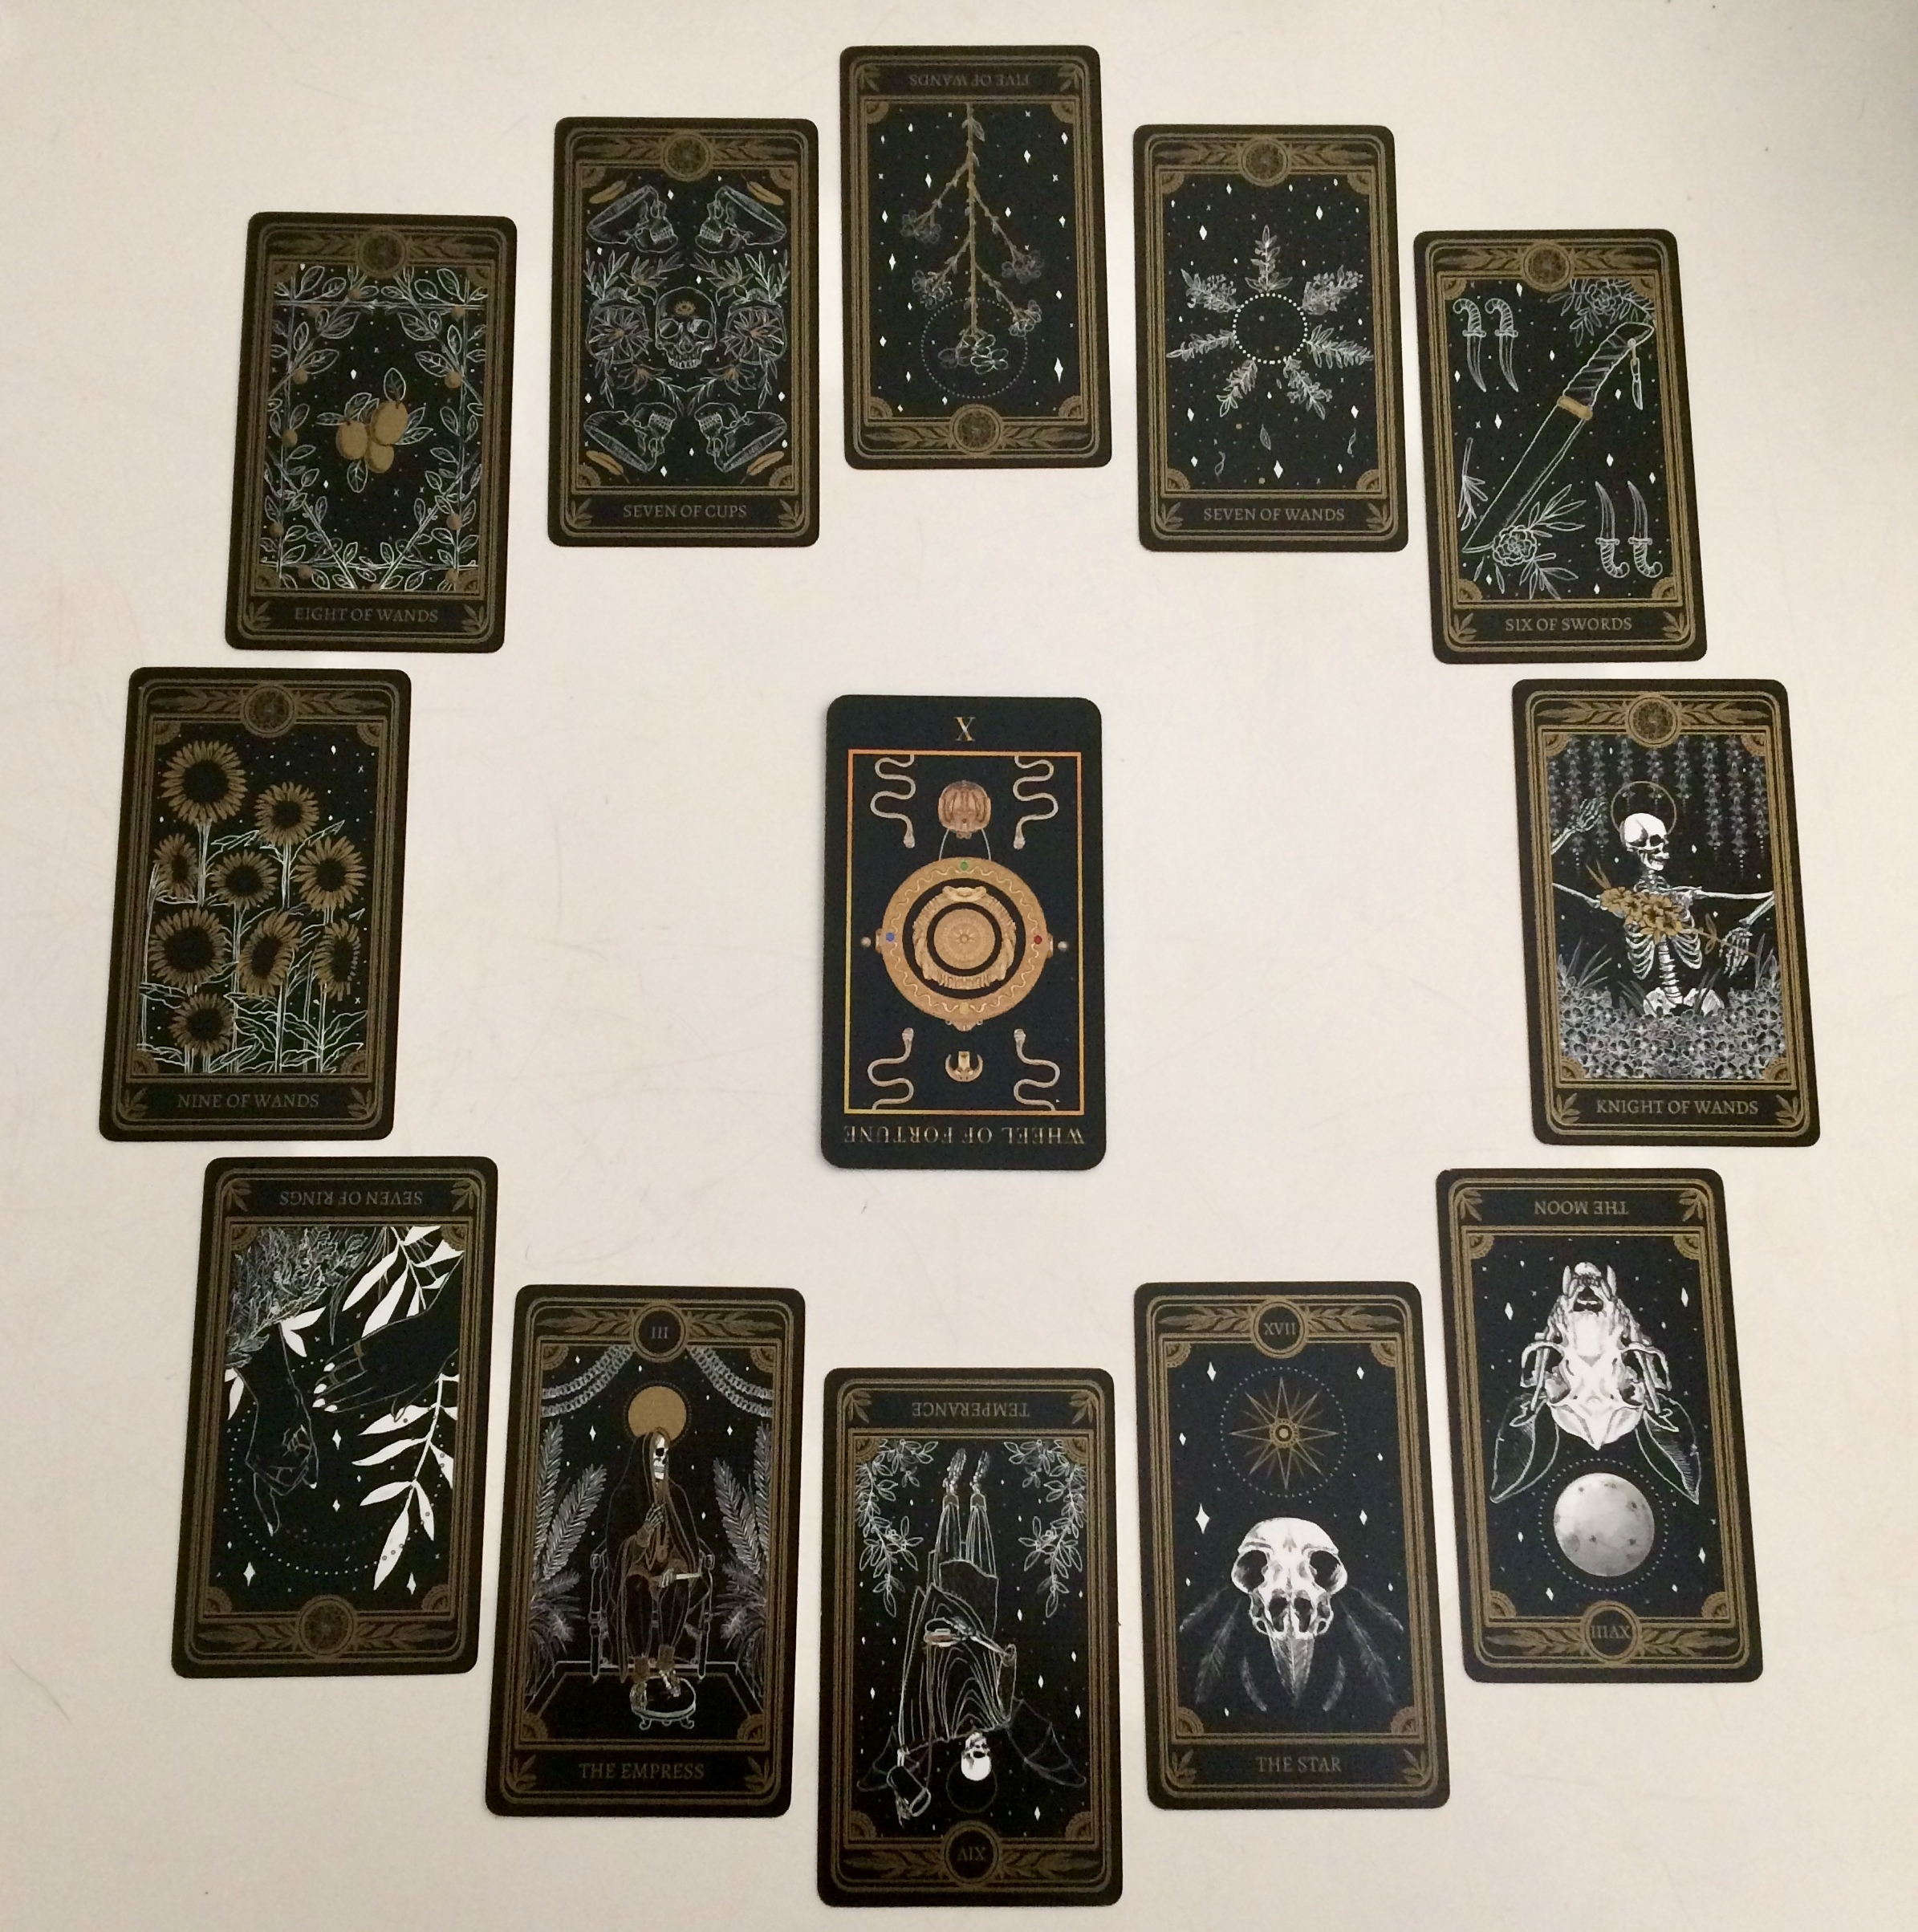 Astrological spread with  Marigold Tarot  and Manzel's Tarot